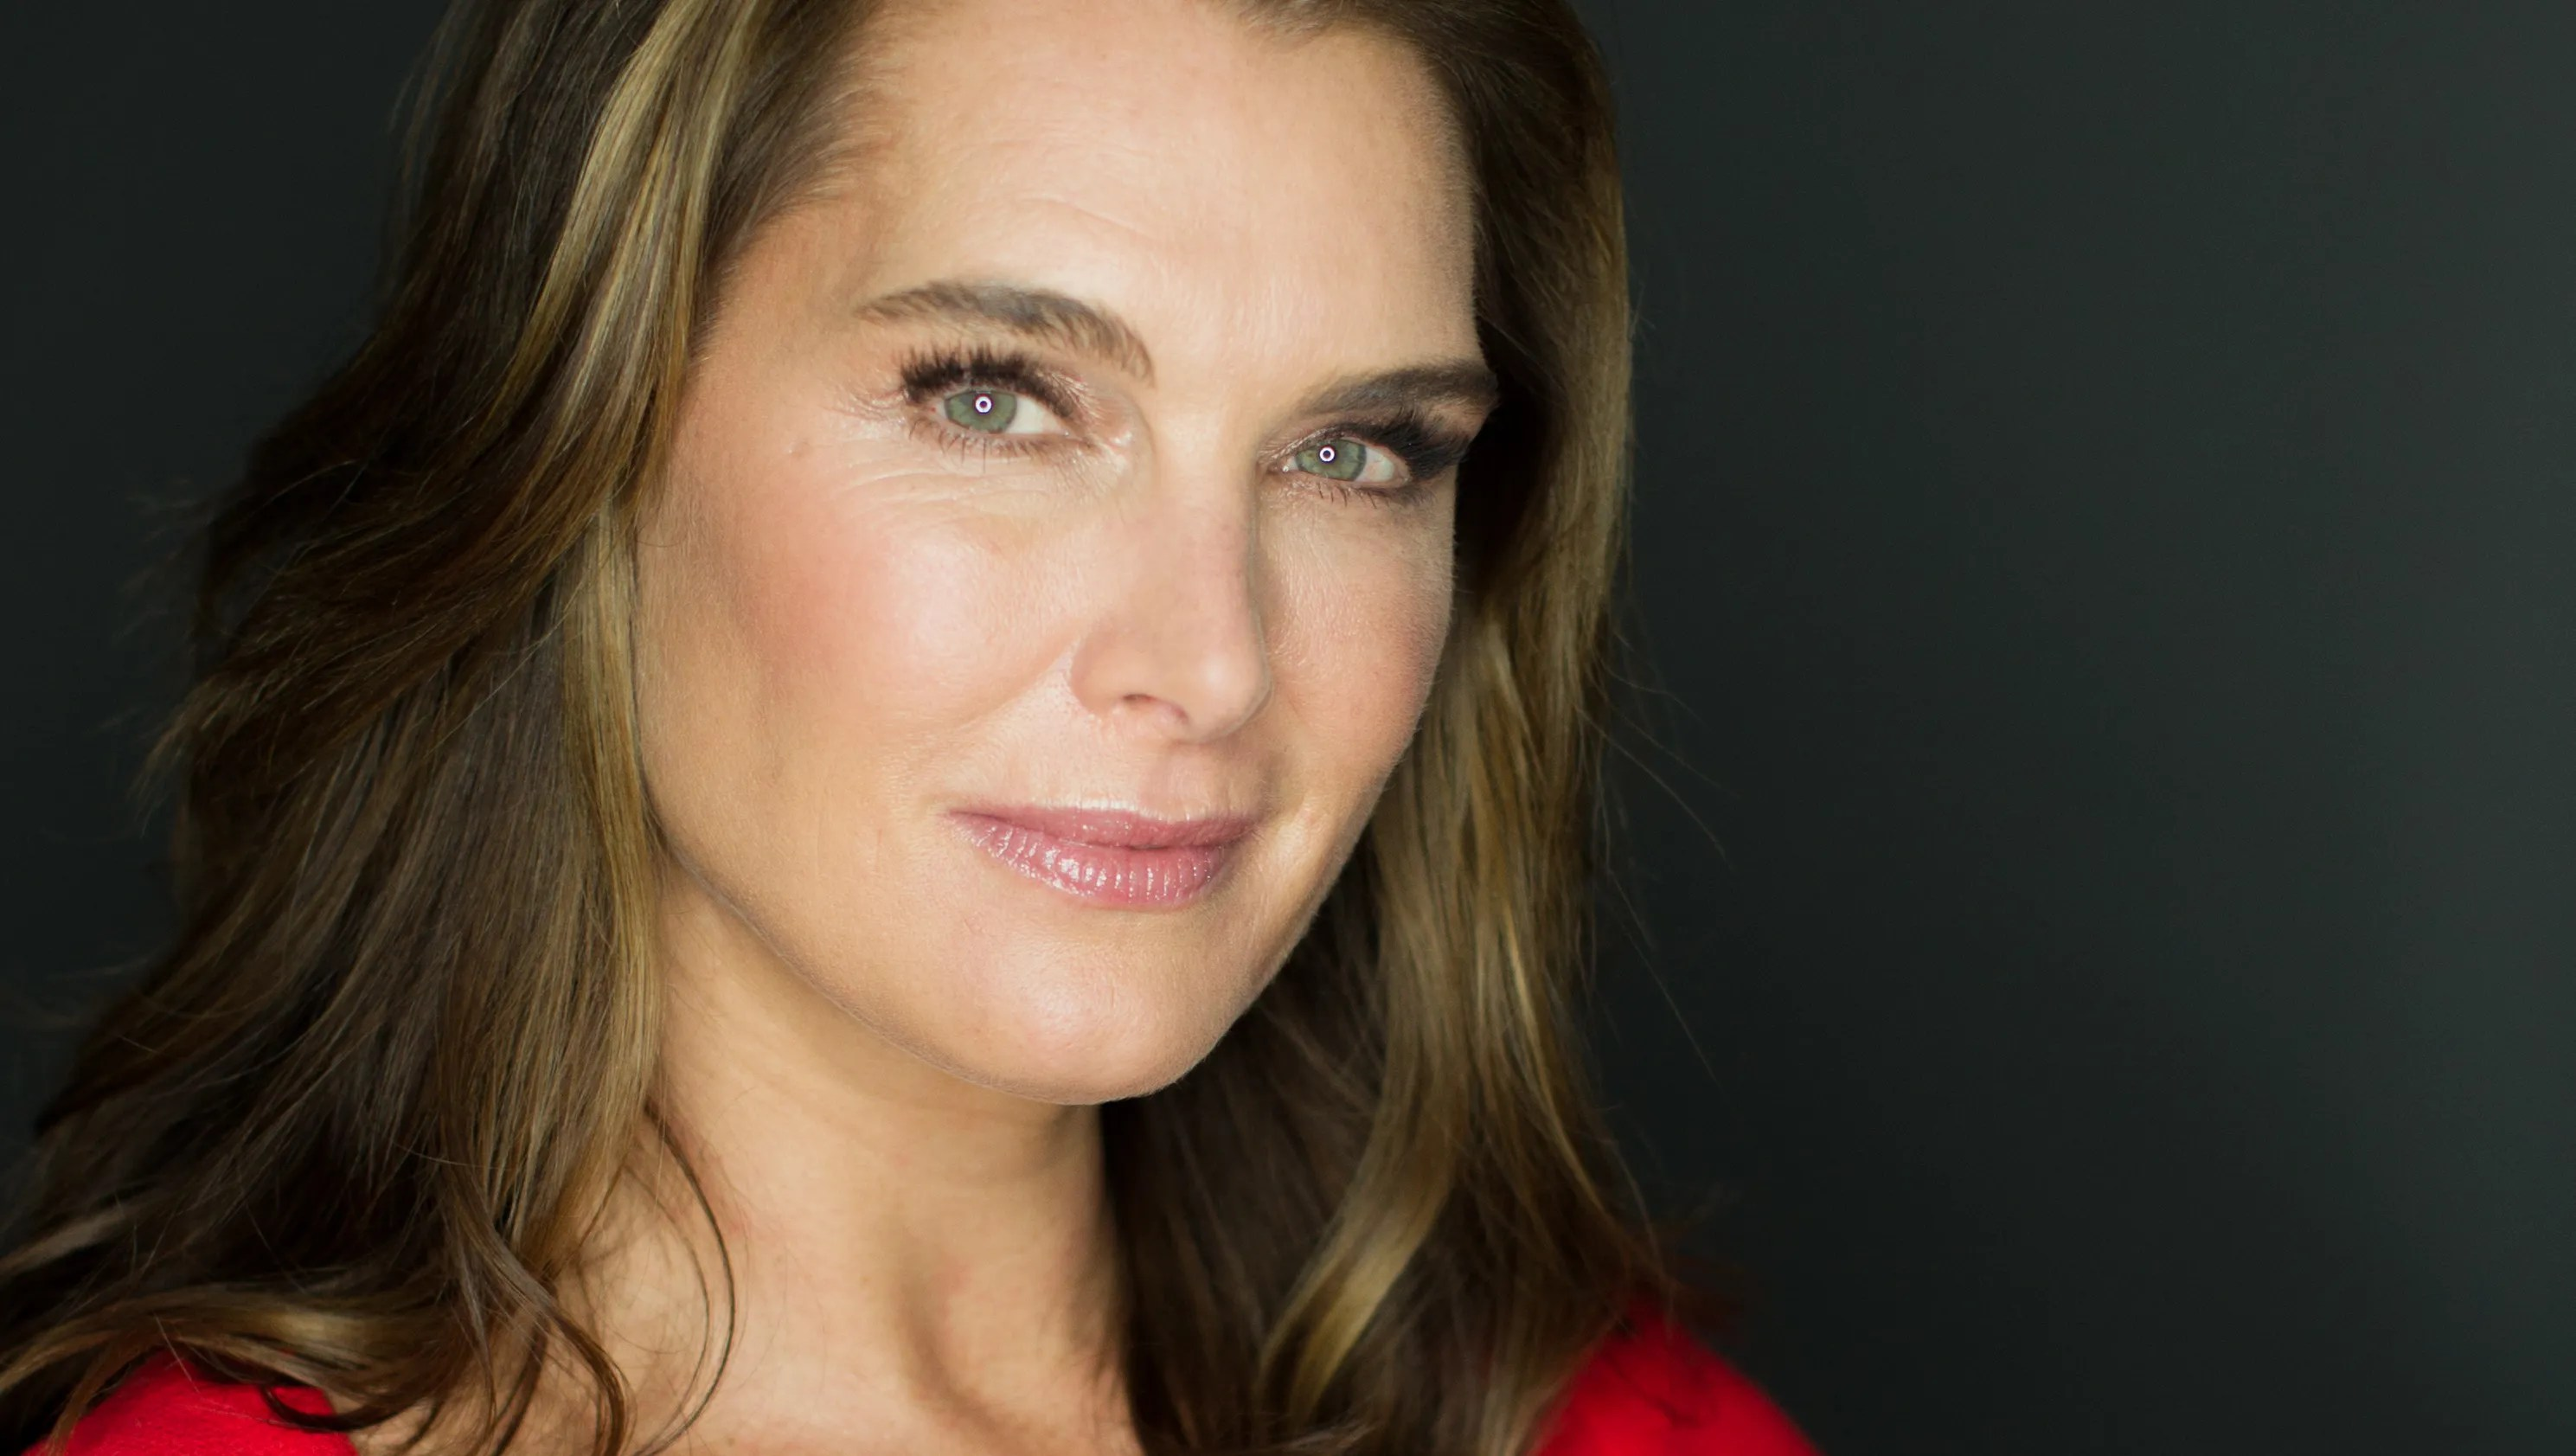 Hd Girl Wallpaper Print Brooke Shields Tells The Real Story Of Her Manager Mom